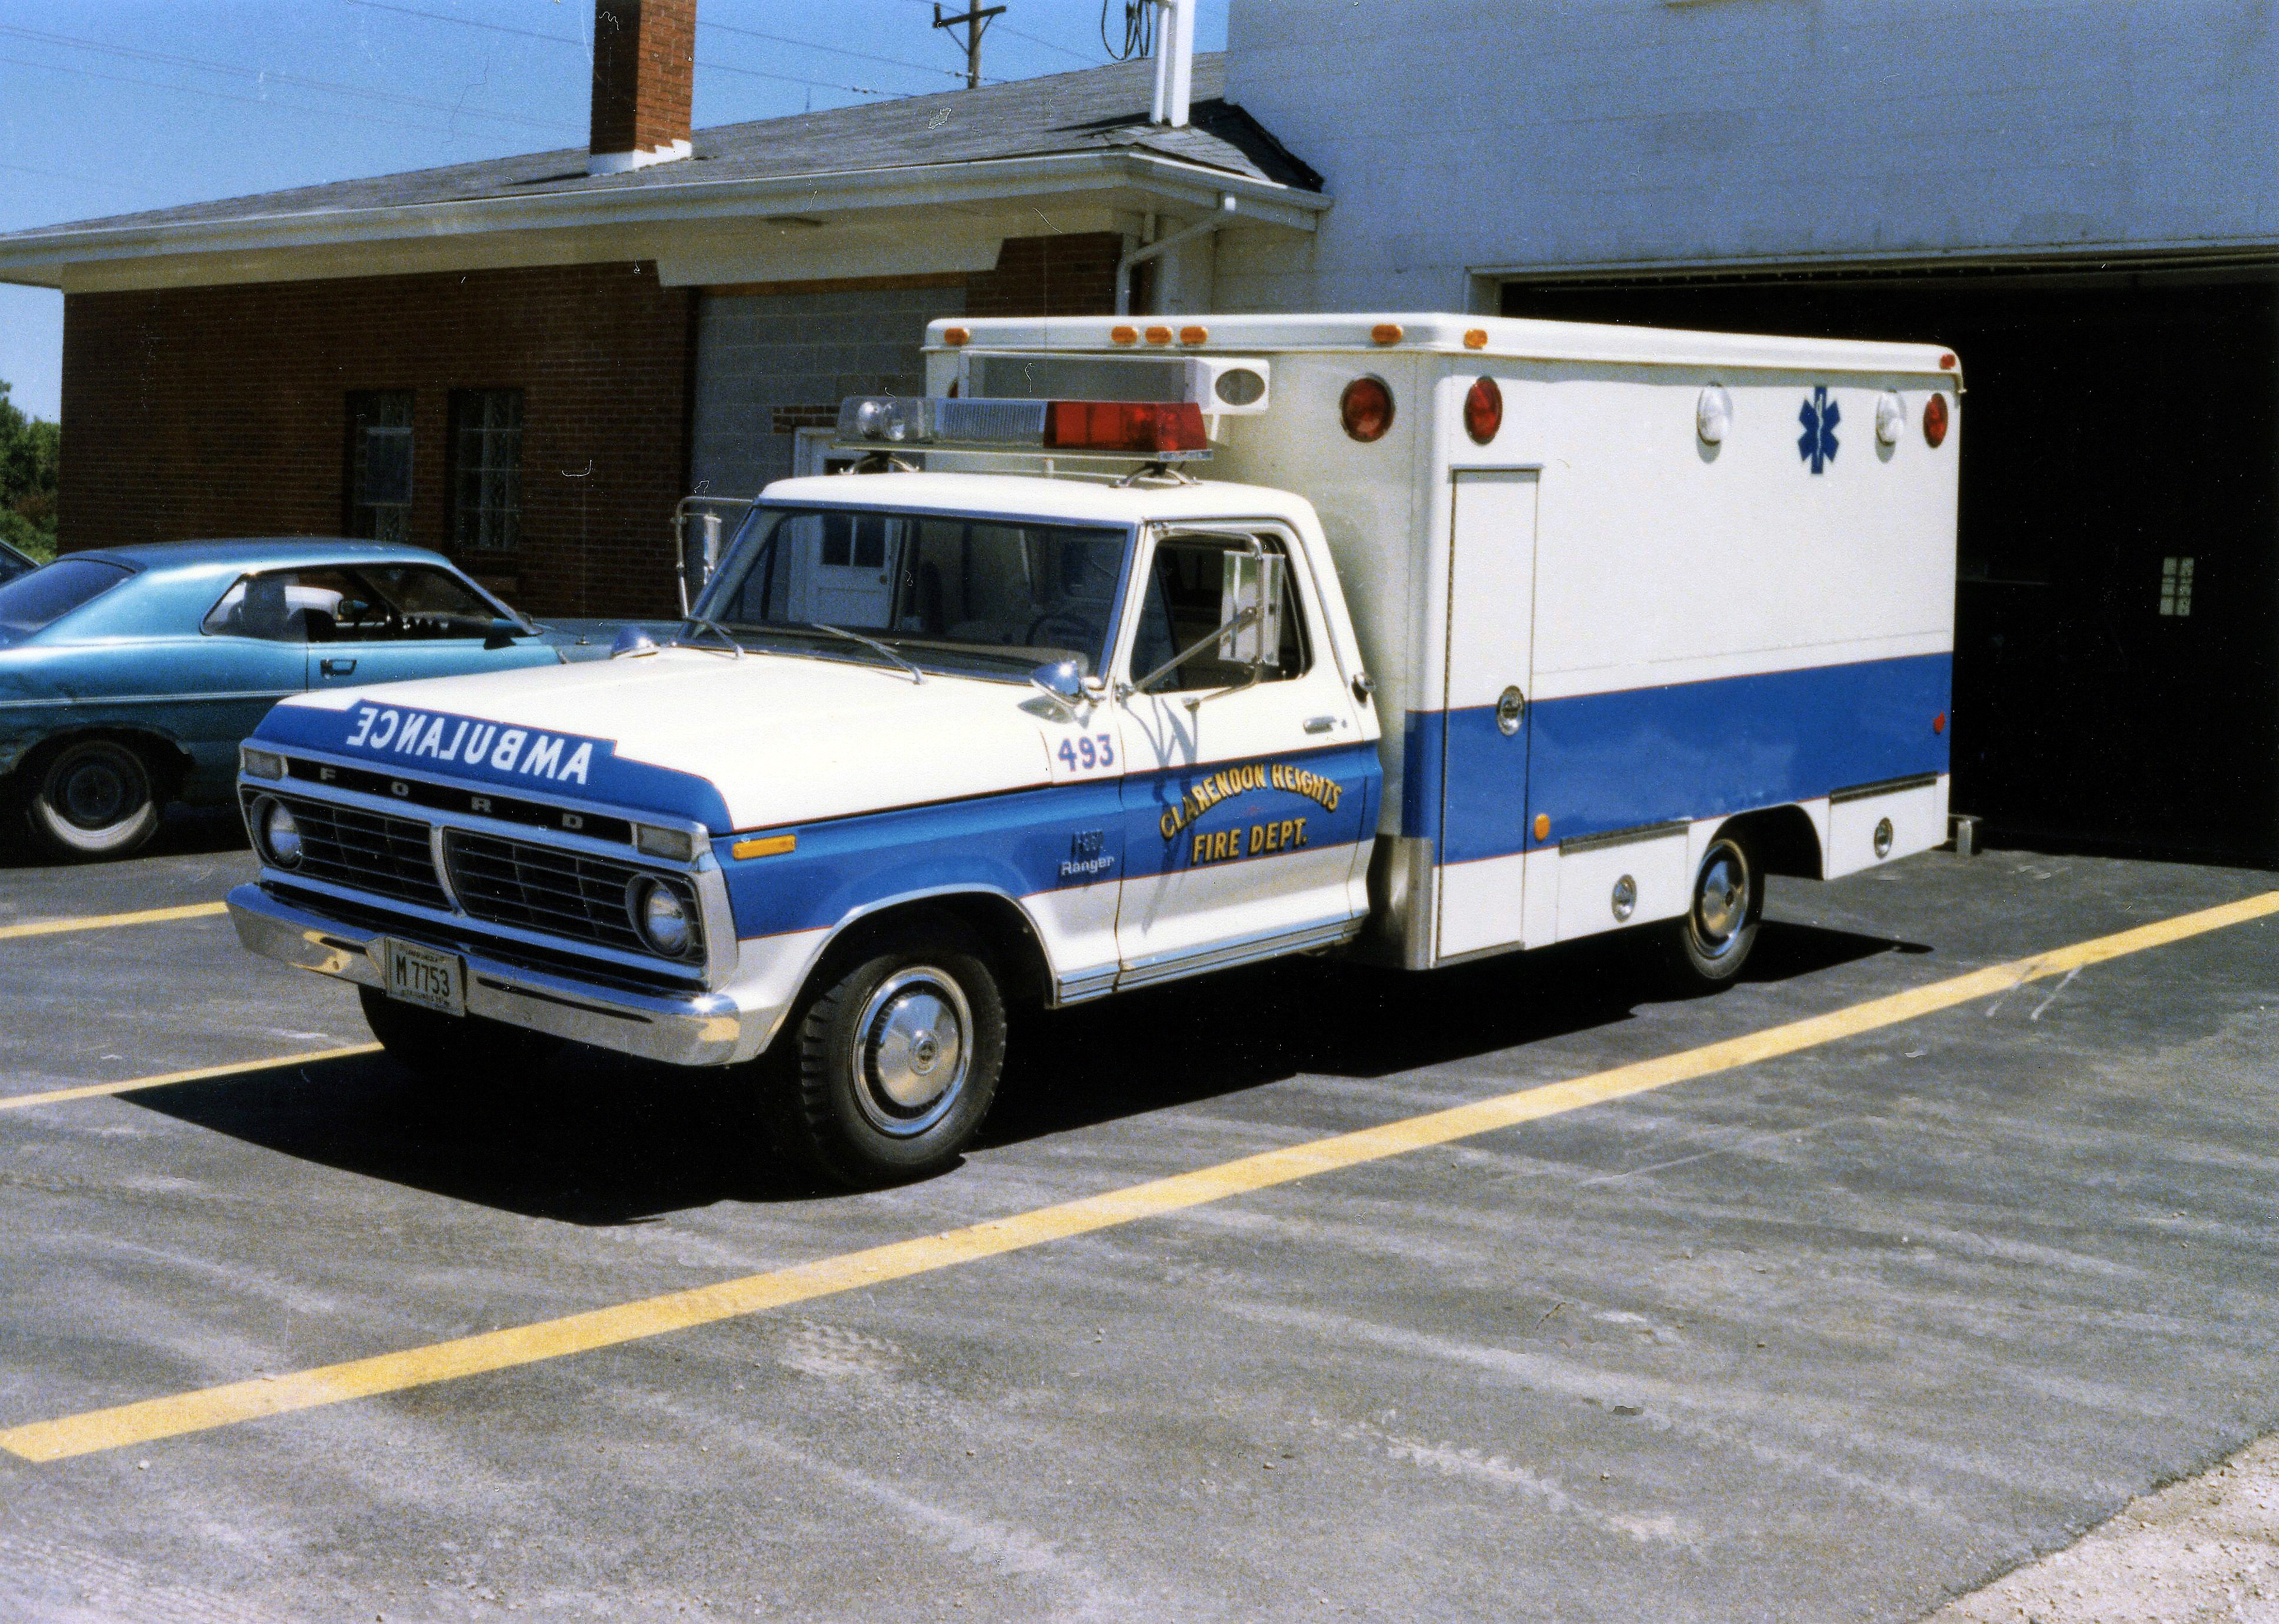 CLARENDON HEIGHTS FPD AMBULANCE 493